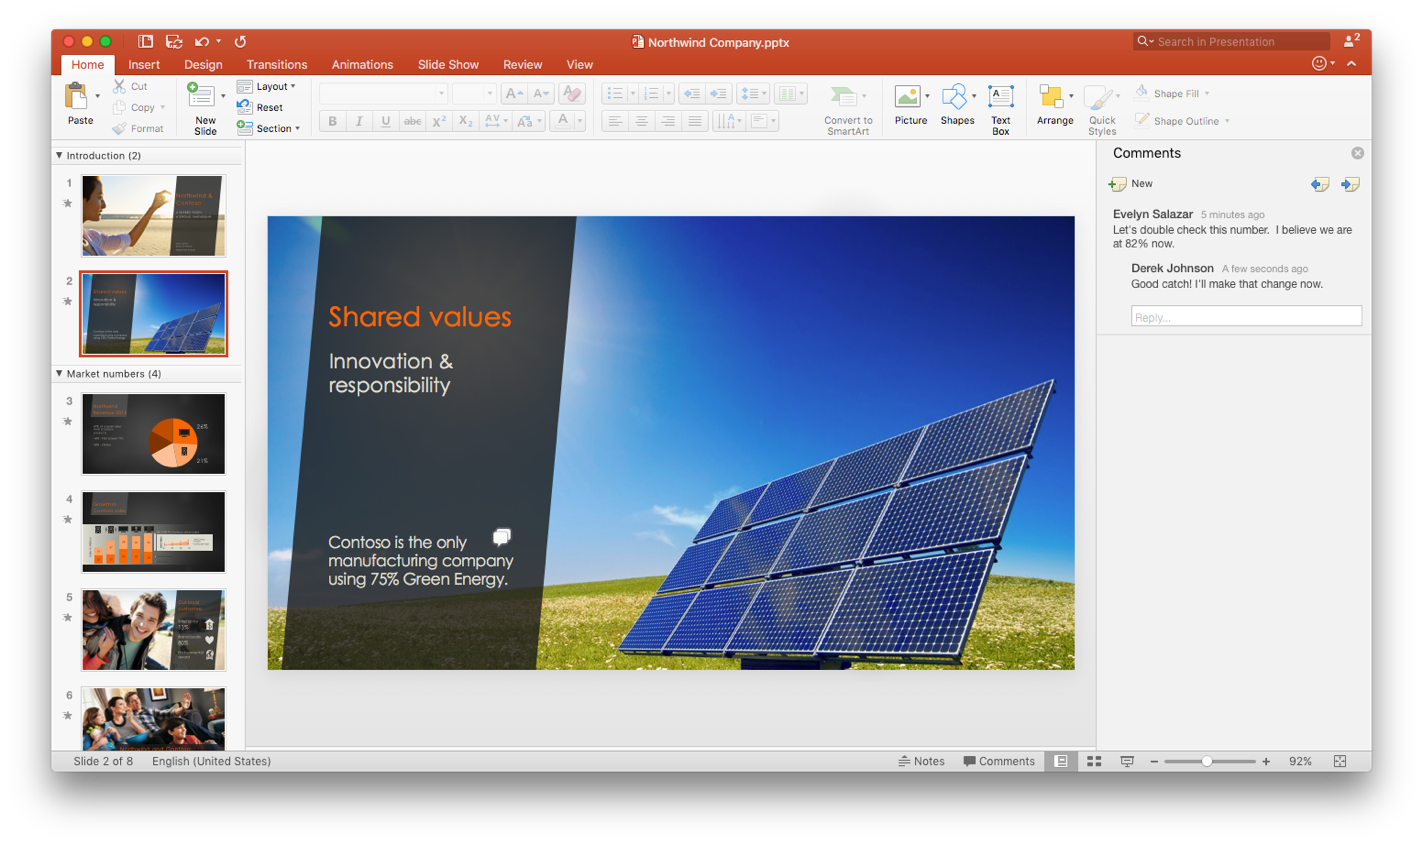 Whats new in powerpoint 2016 for mac microsoft 365 blog what is new in powerpoint 2016 for mac 4 toneelgroepblik Images